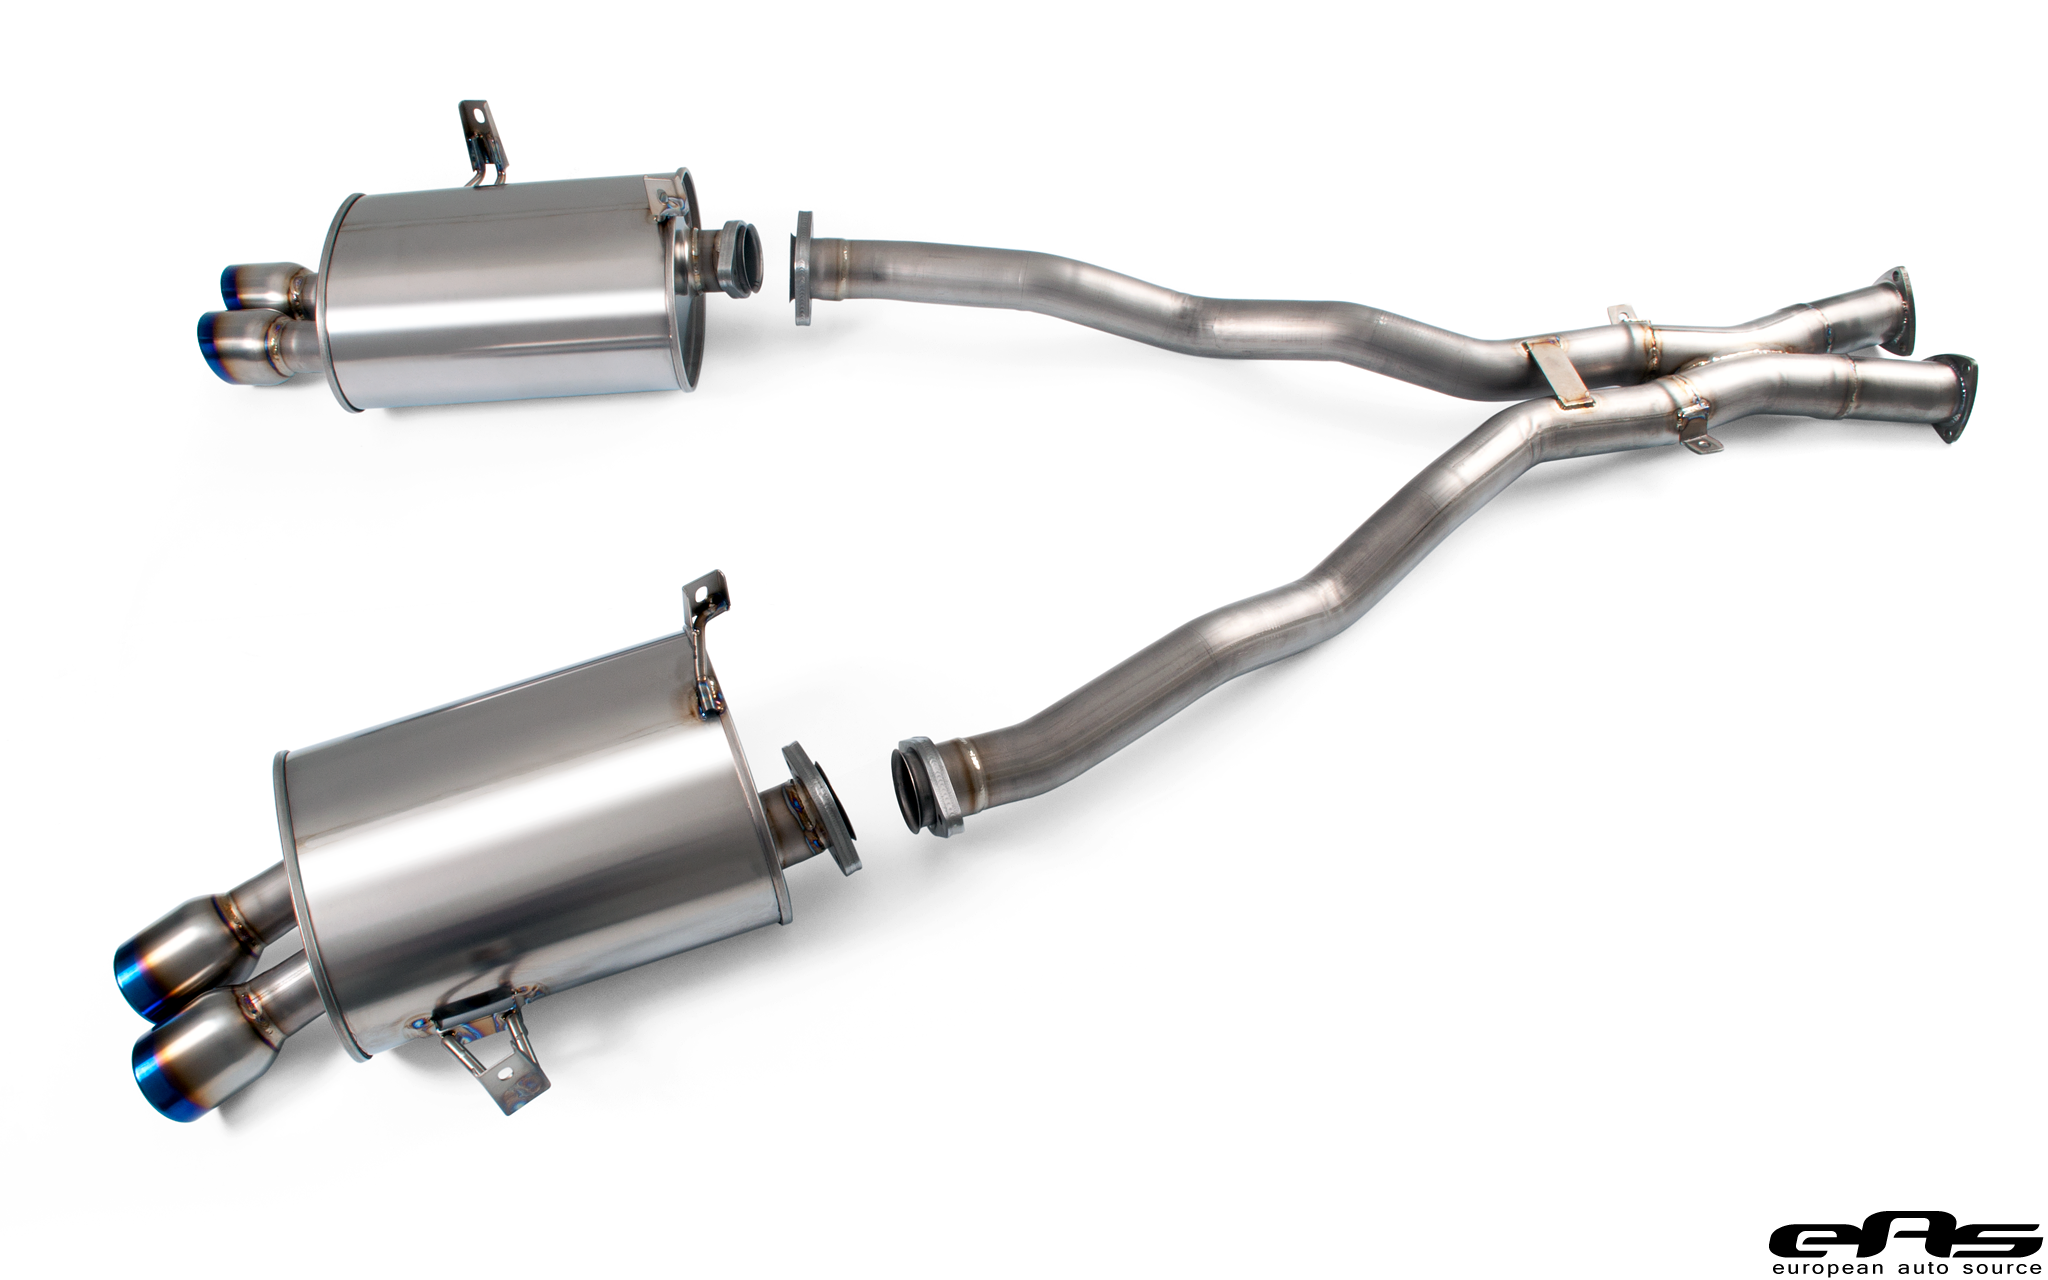 Arqray Titanium Exhaust Installed On Our Z4m Bmw